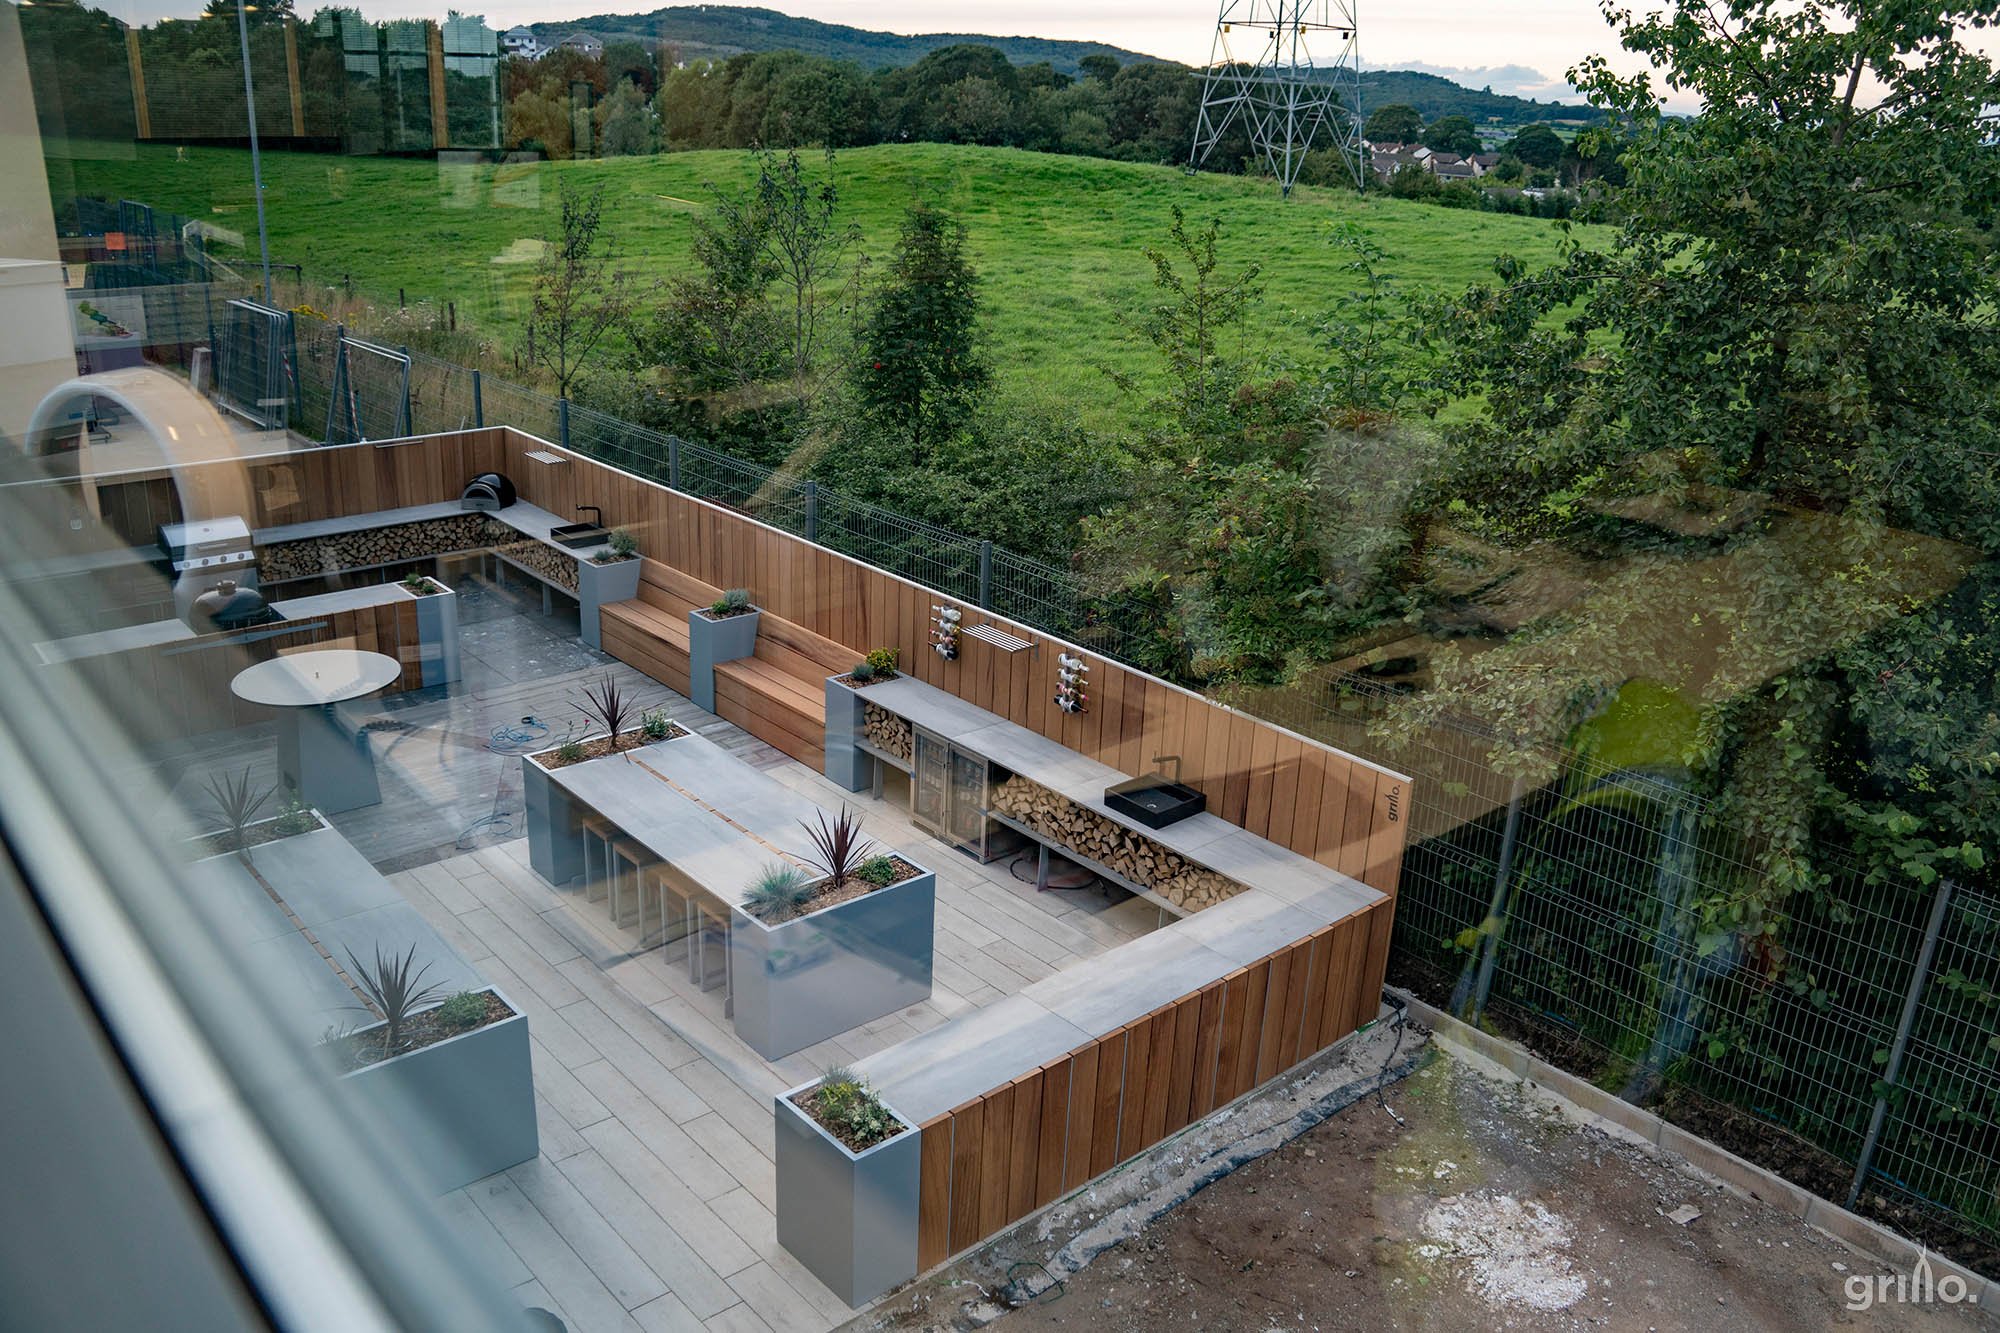 Havwoods Grillo outdoor kitchen project seating, Chef's Anvil BBQs pizza oven, sinks, double fridges